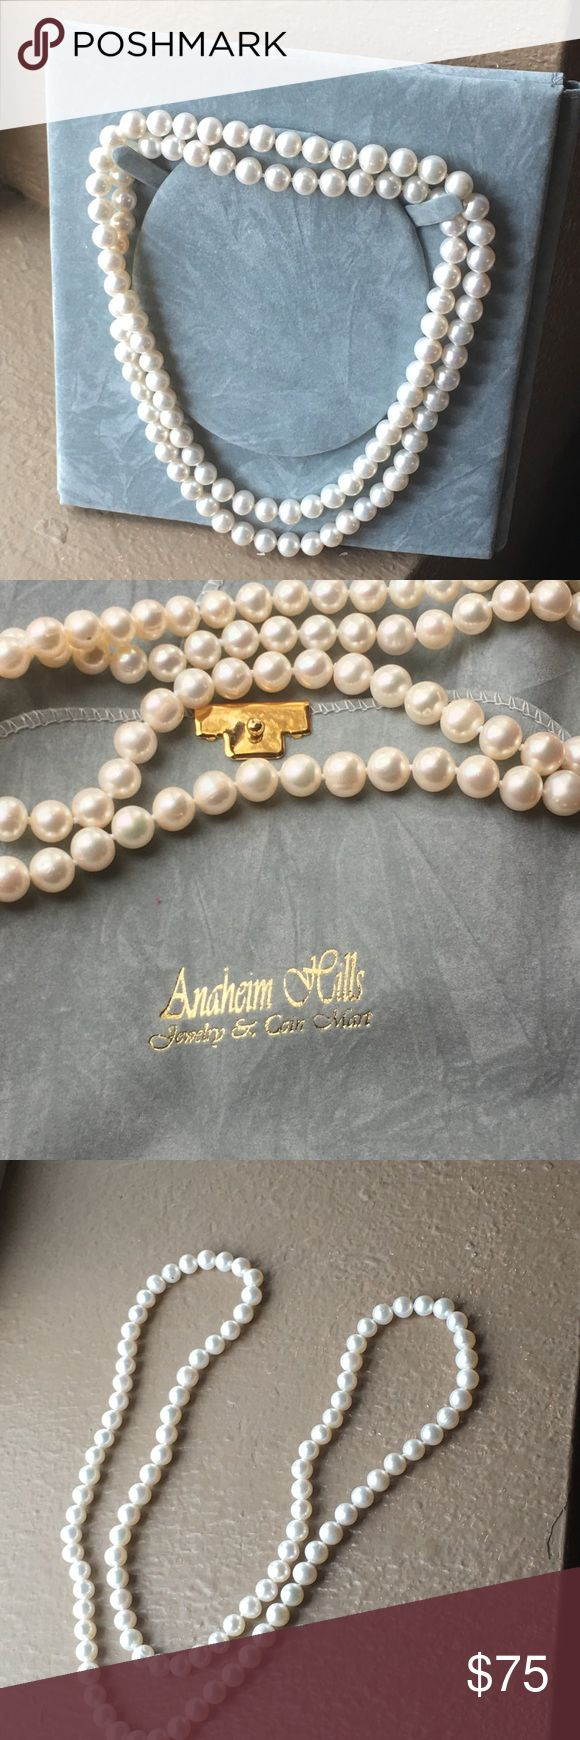 Pearls! These beautiful pearls hang 17 inches when put around your neck in a single strand. They can also be worn doubled for a choker look. The brand is Anaheim Hills. They are new and have never been worn out at all. I won them at an auction! Anaheim Hills Jewelry Necklaces